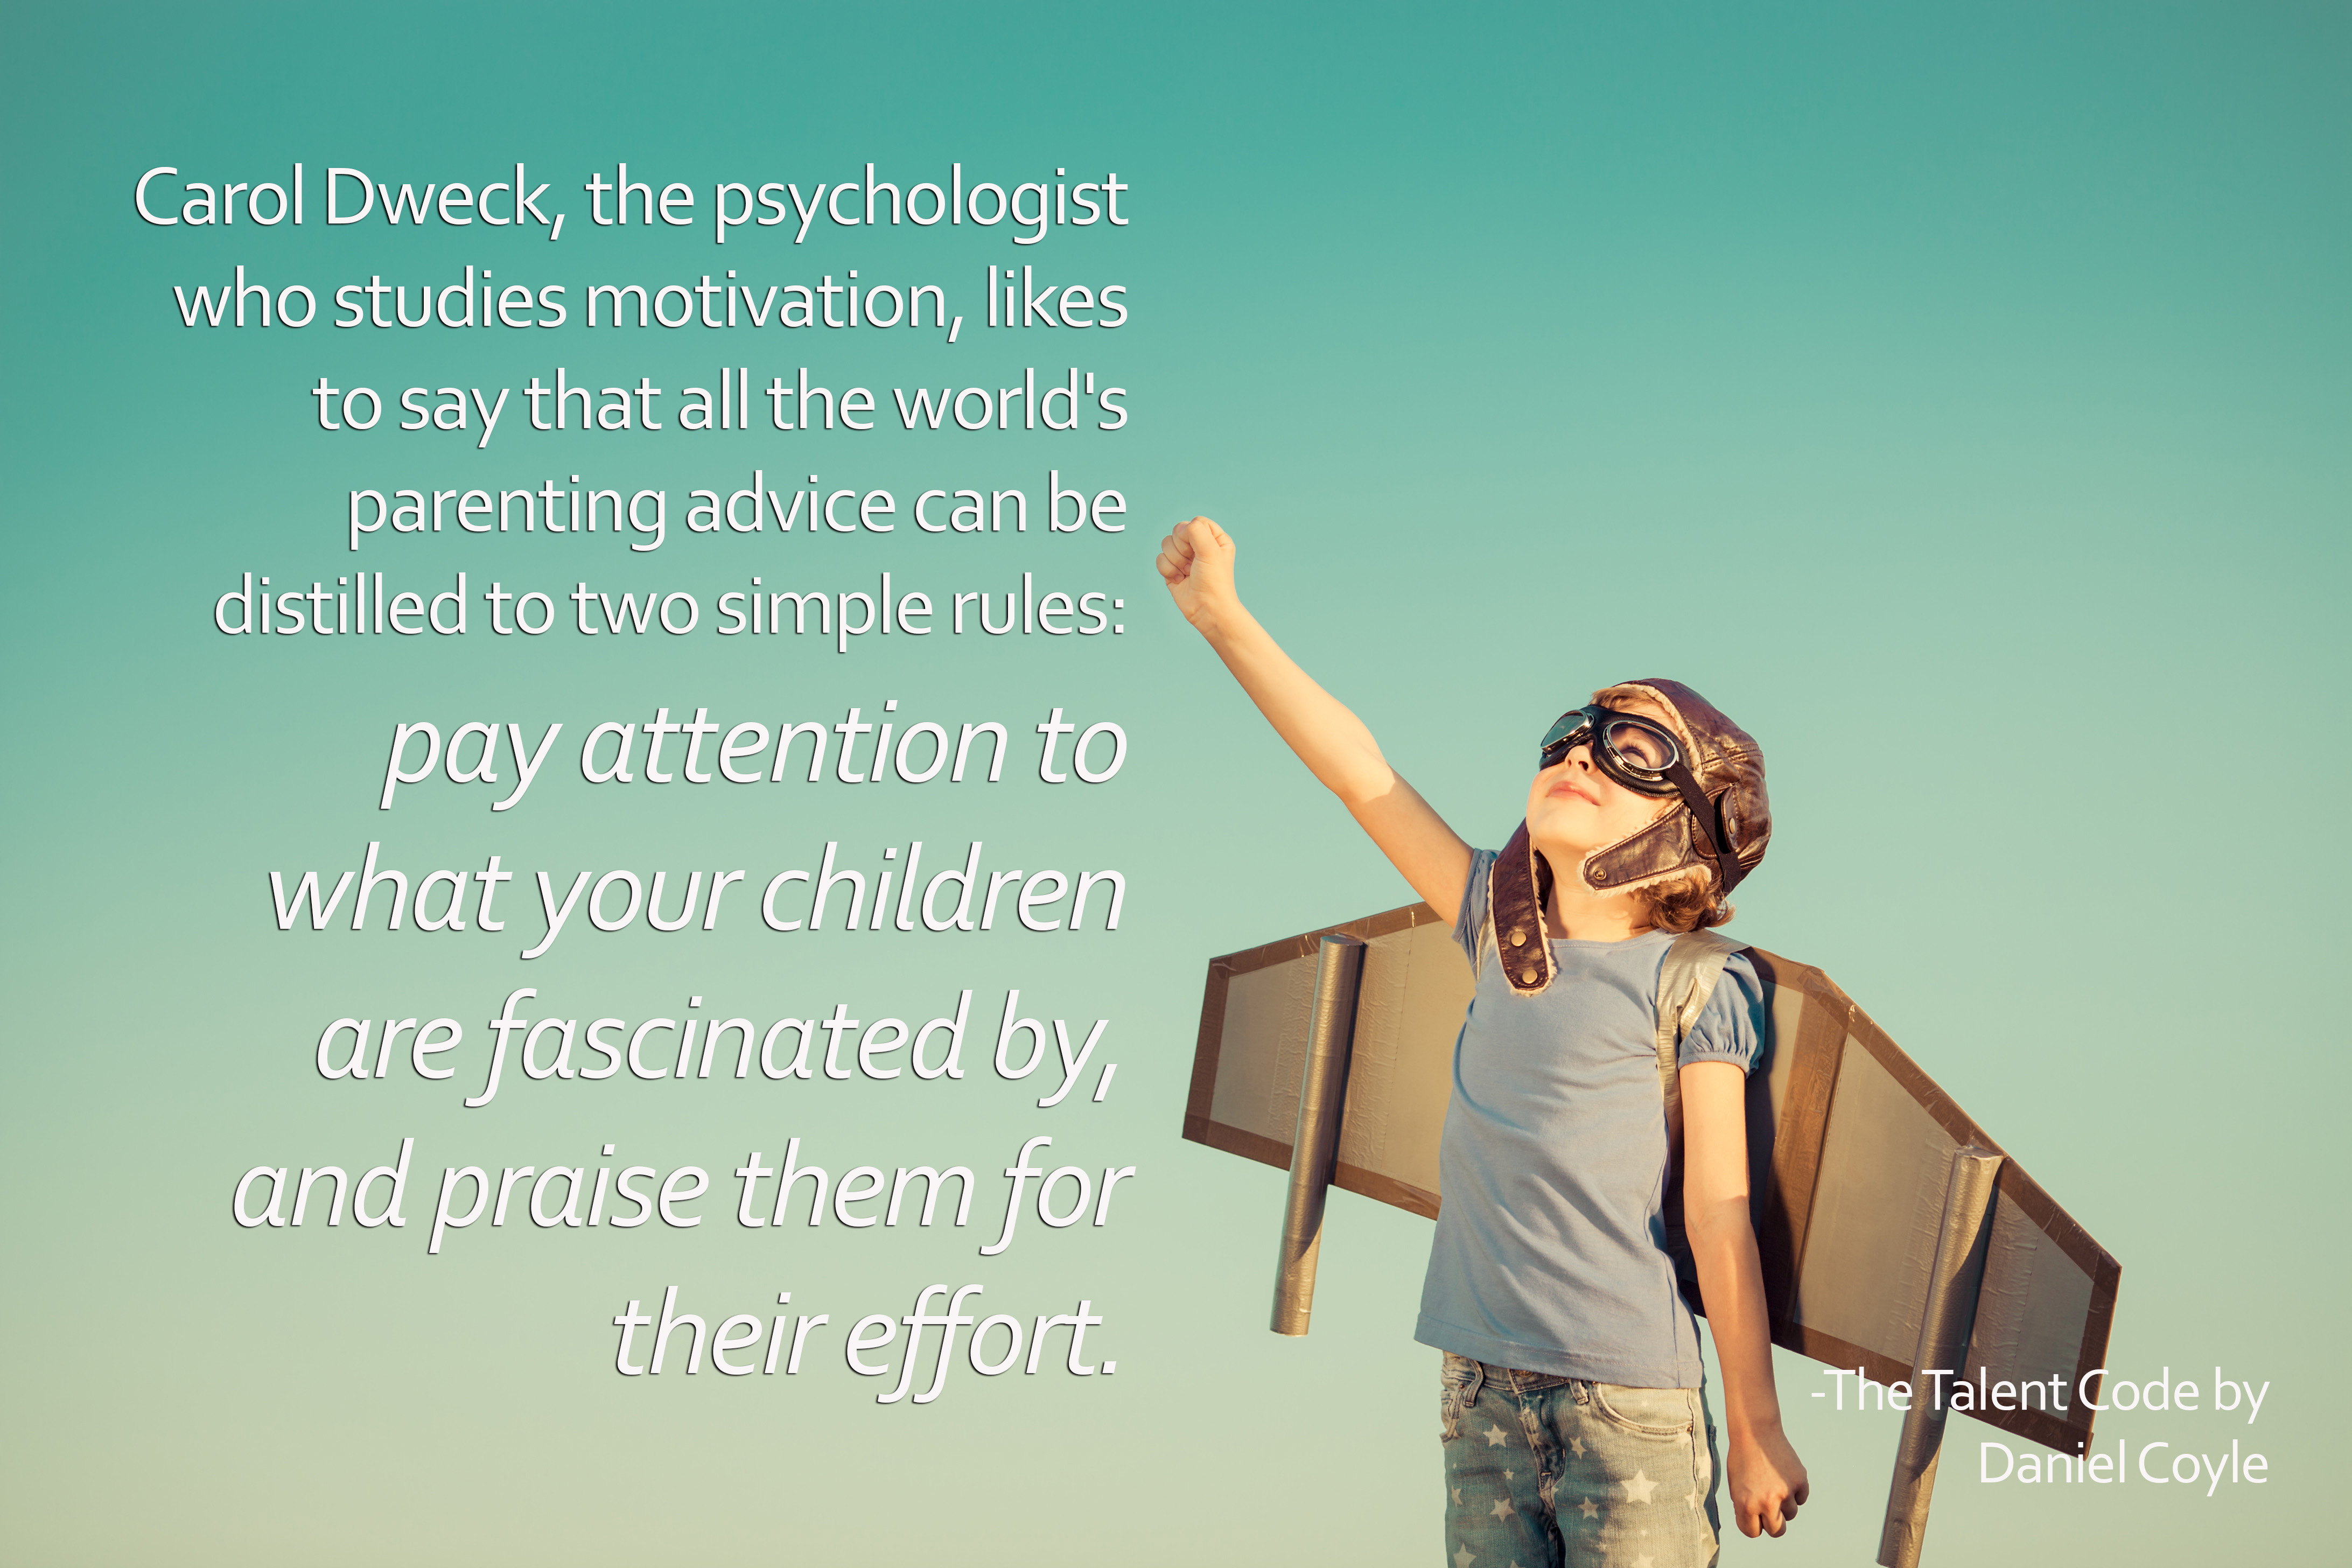 pay attention to what your children are fascinated by and praise them for their effort